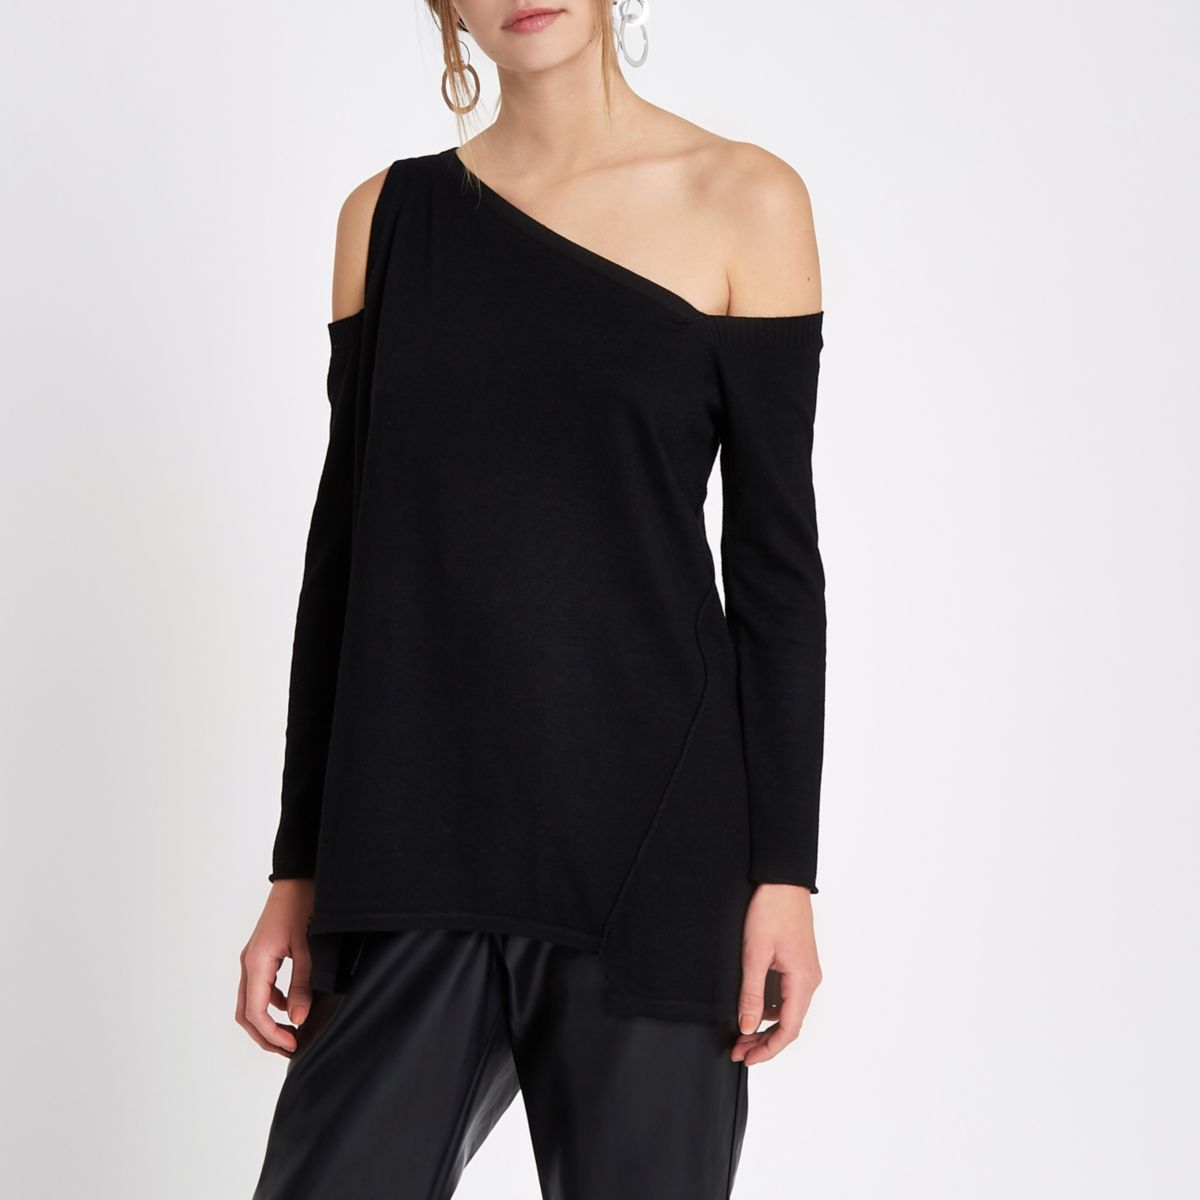 Black asymmetric one shoulder knitted top